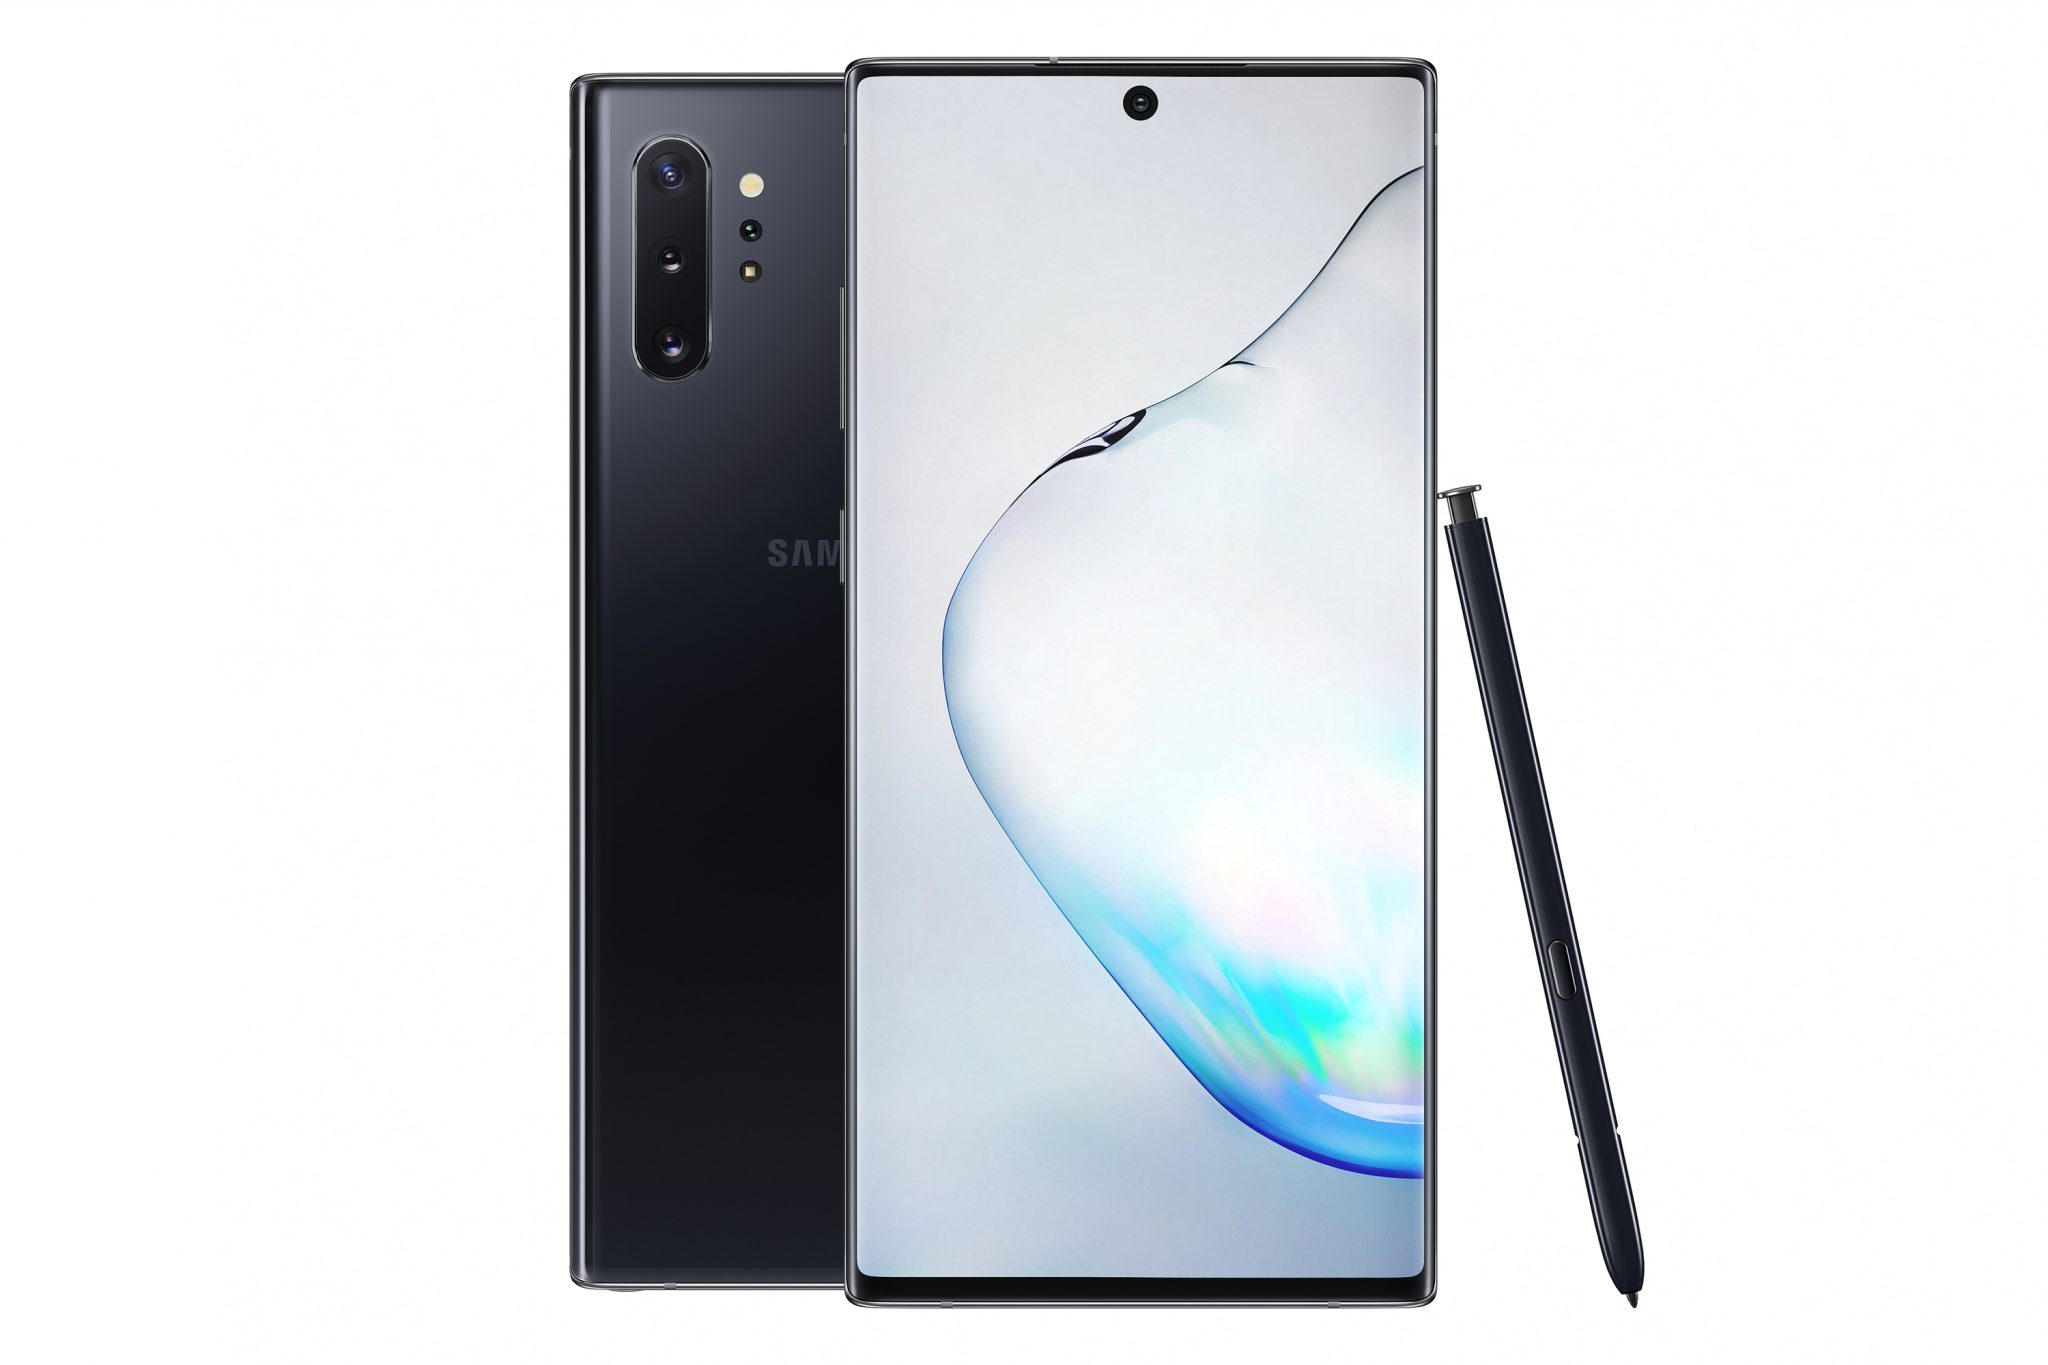 00_galaxynote10plus_product_images_aura_black